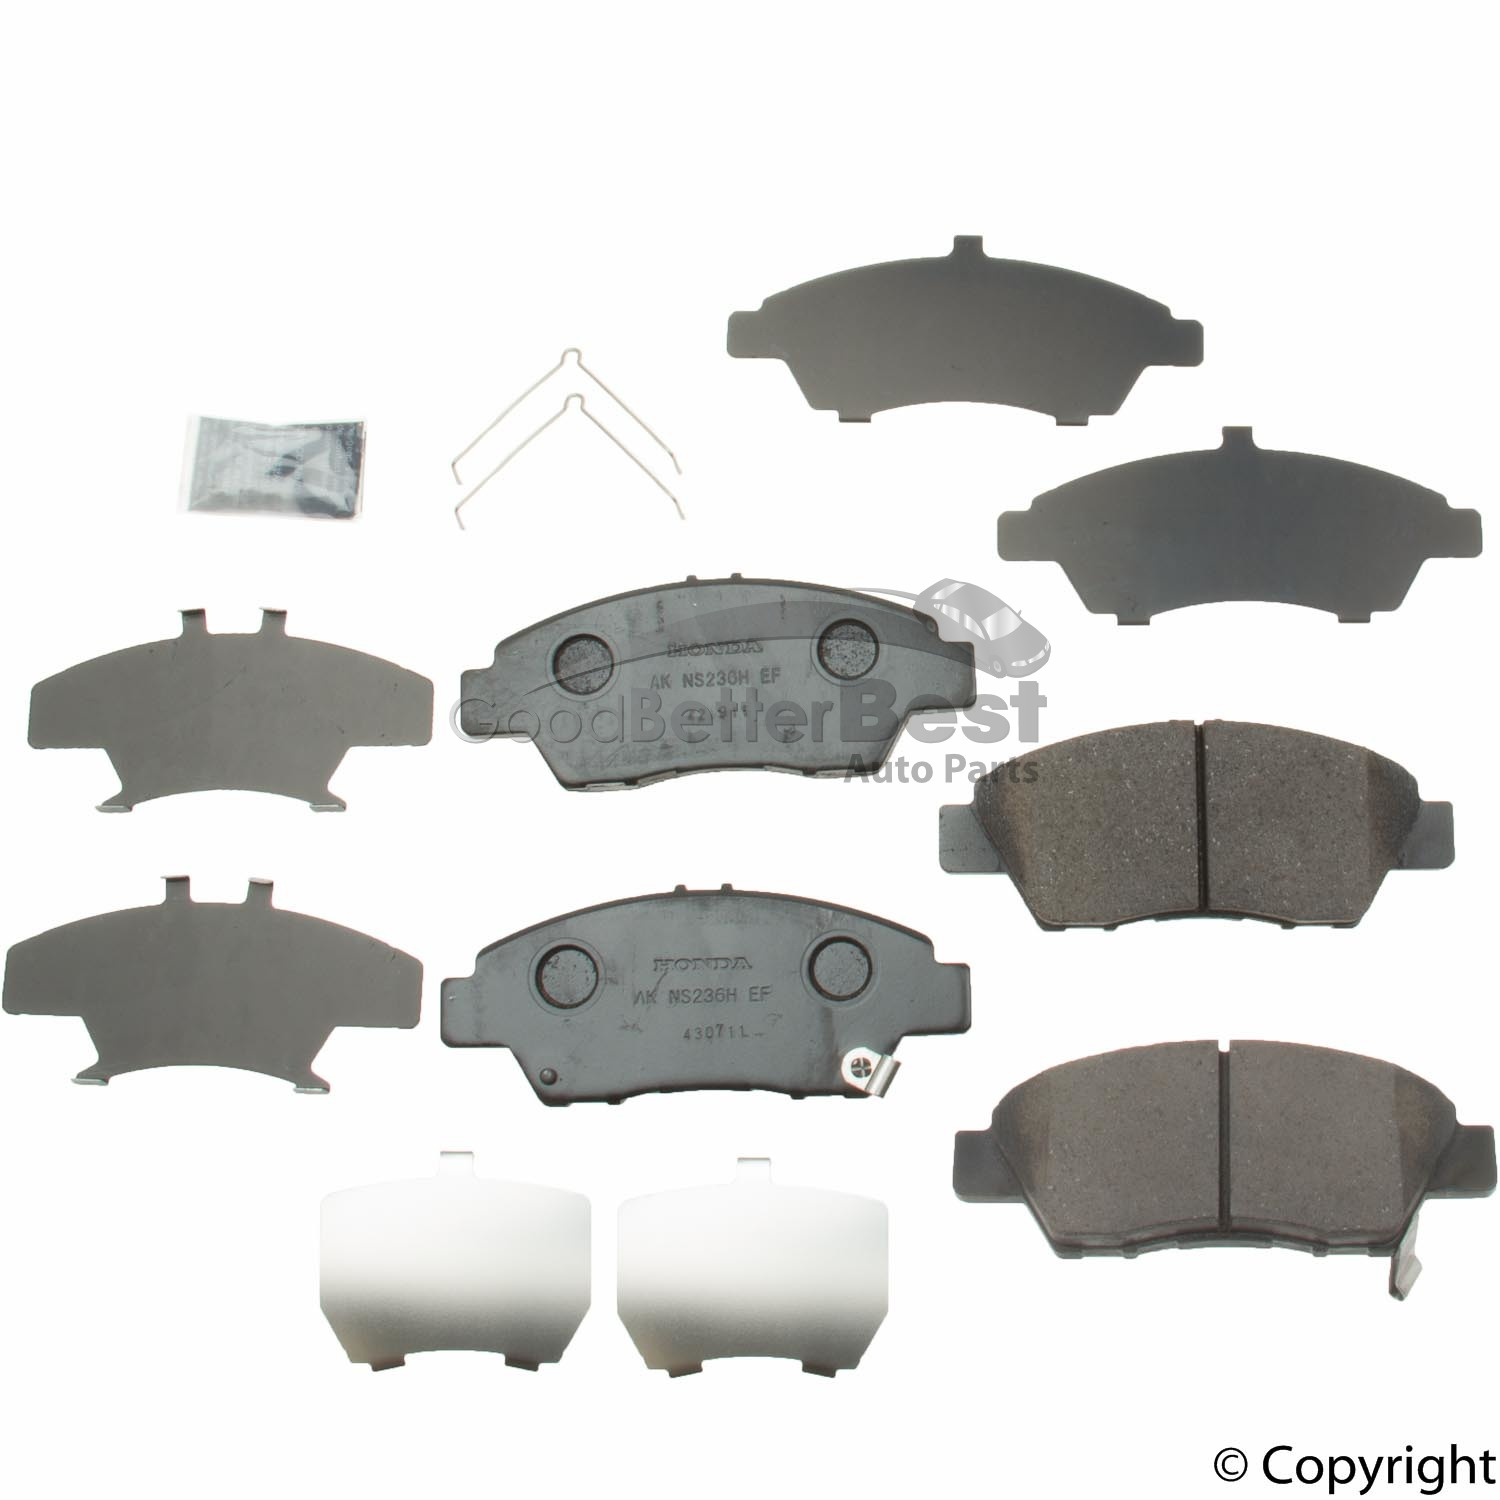 Details about New Genuine Disc Brake Pad Set Front 45022TK6A01 45022TK6A00  for Honda CR-Z Fit